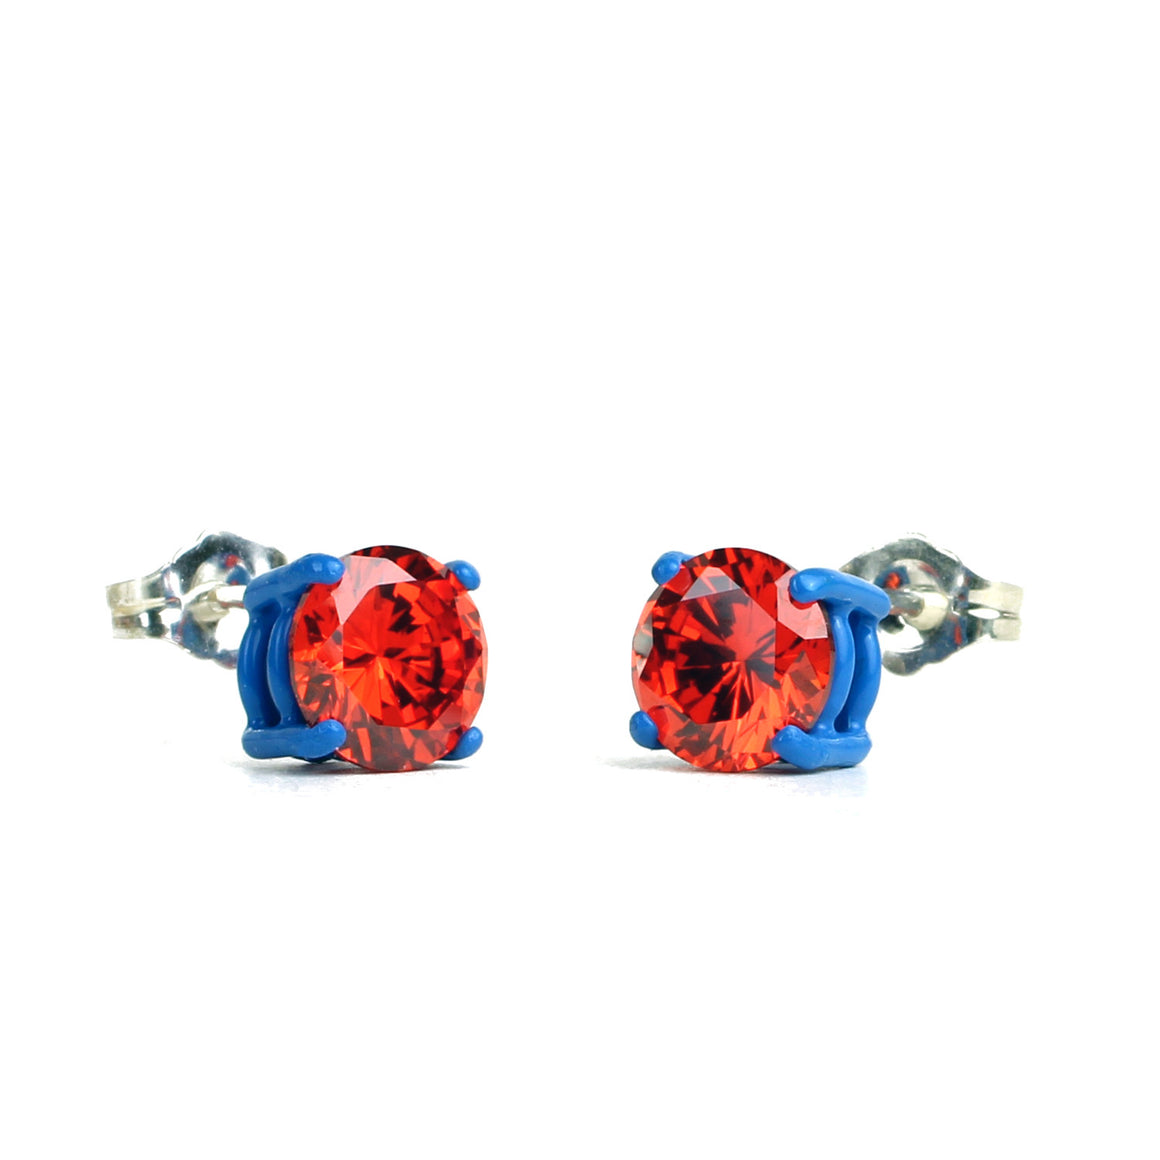 SALE - Orange 7mm Round Bling Earrings - Powder Coated